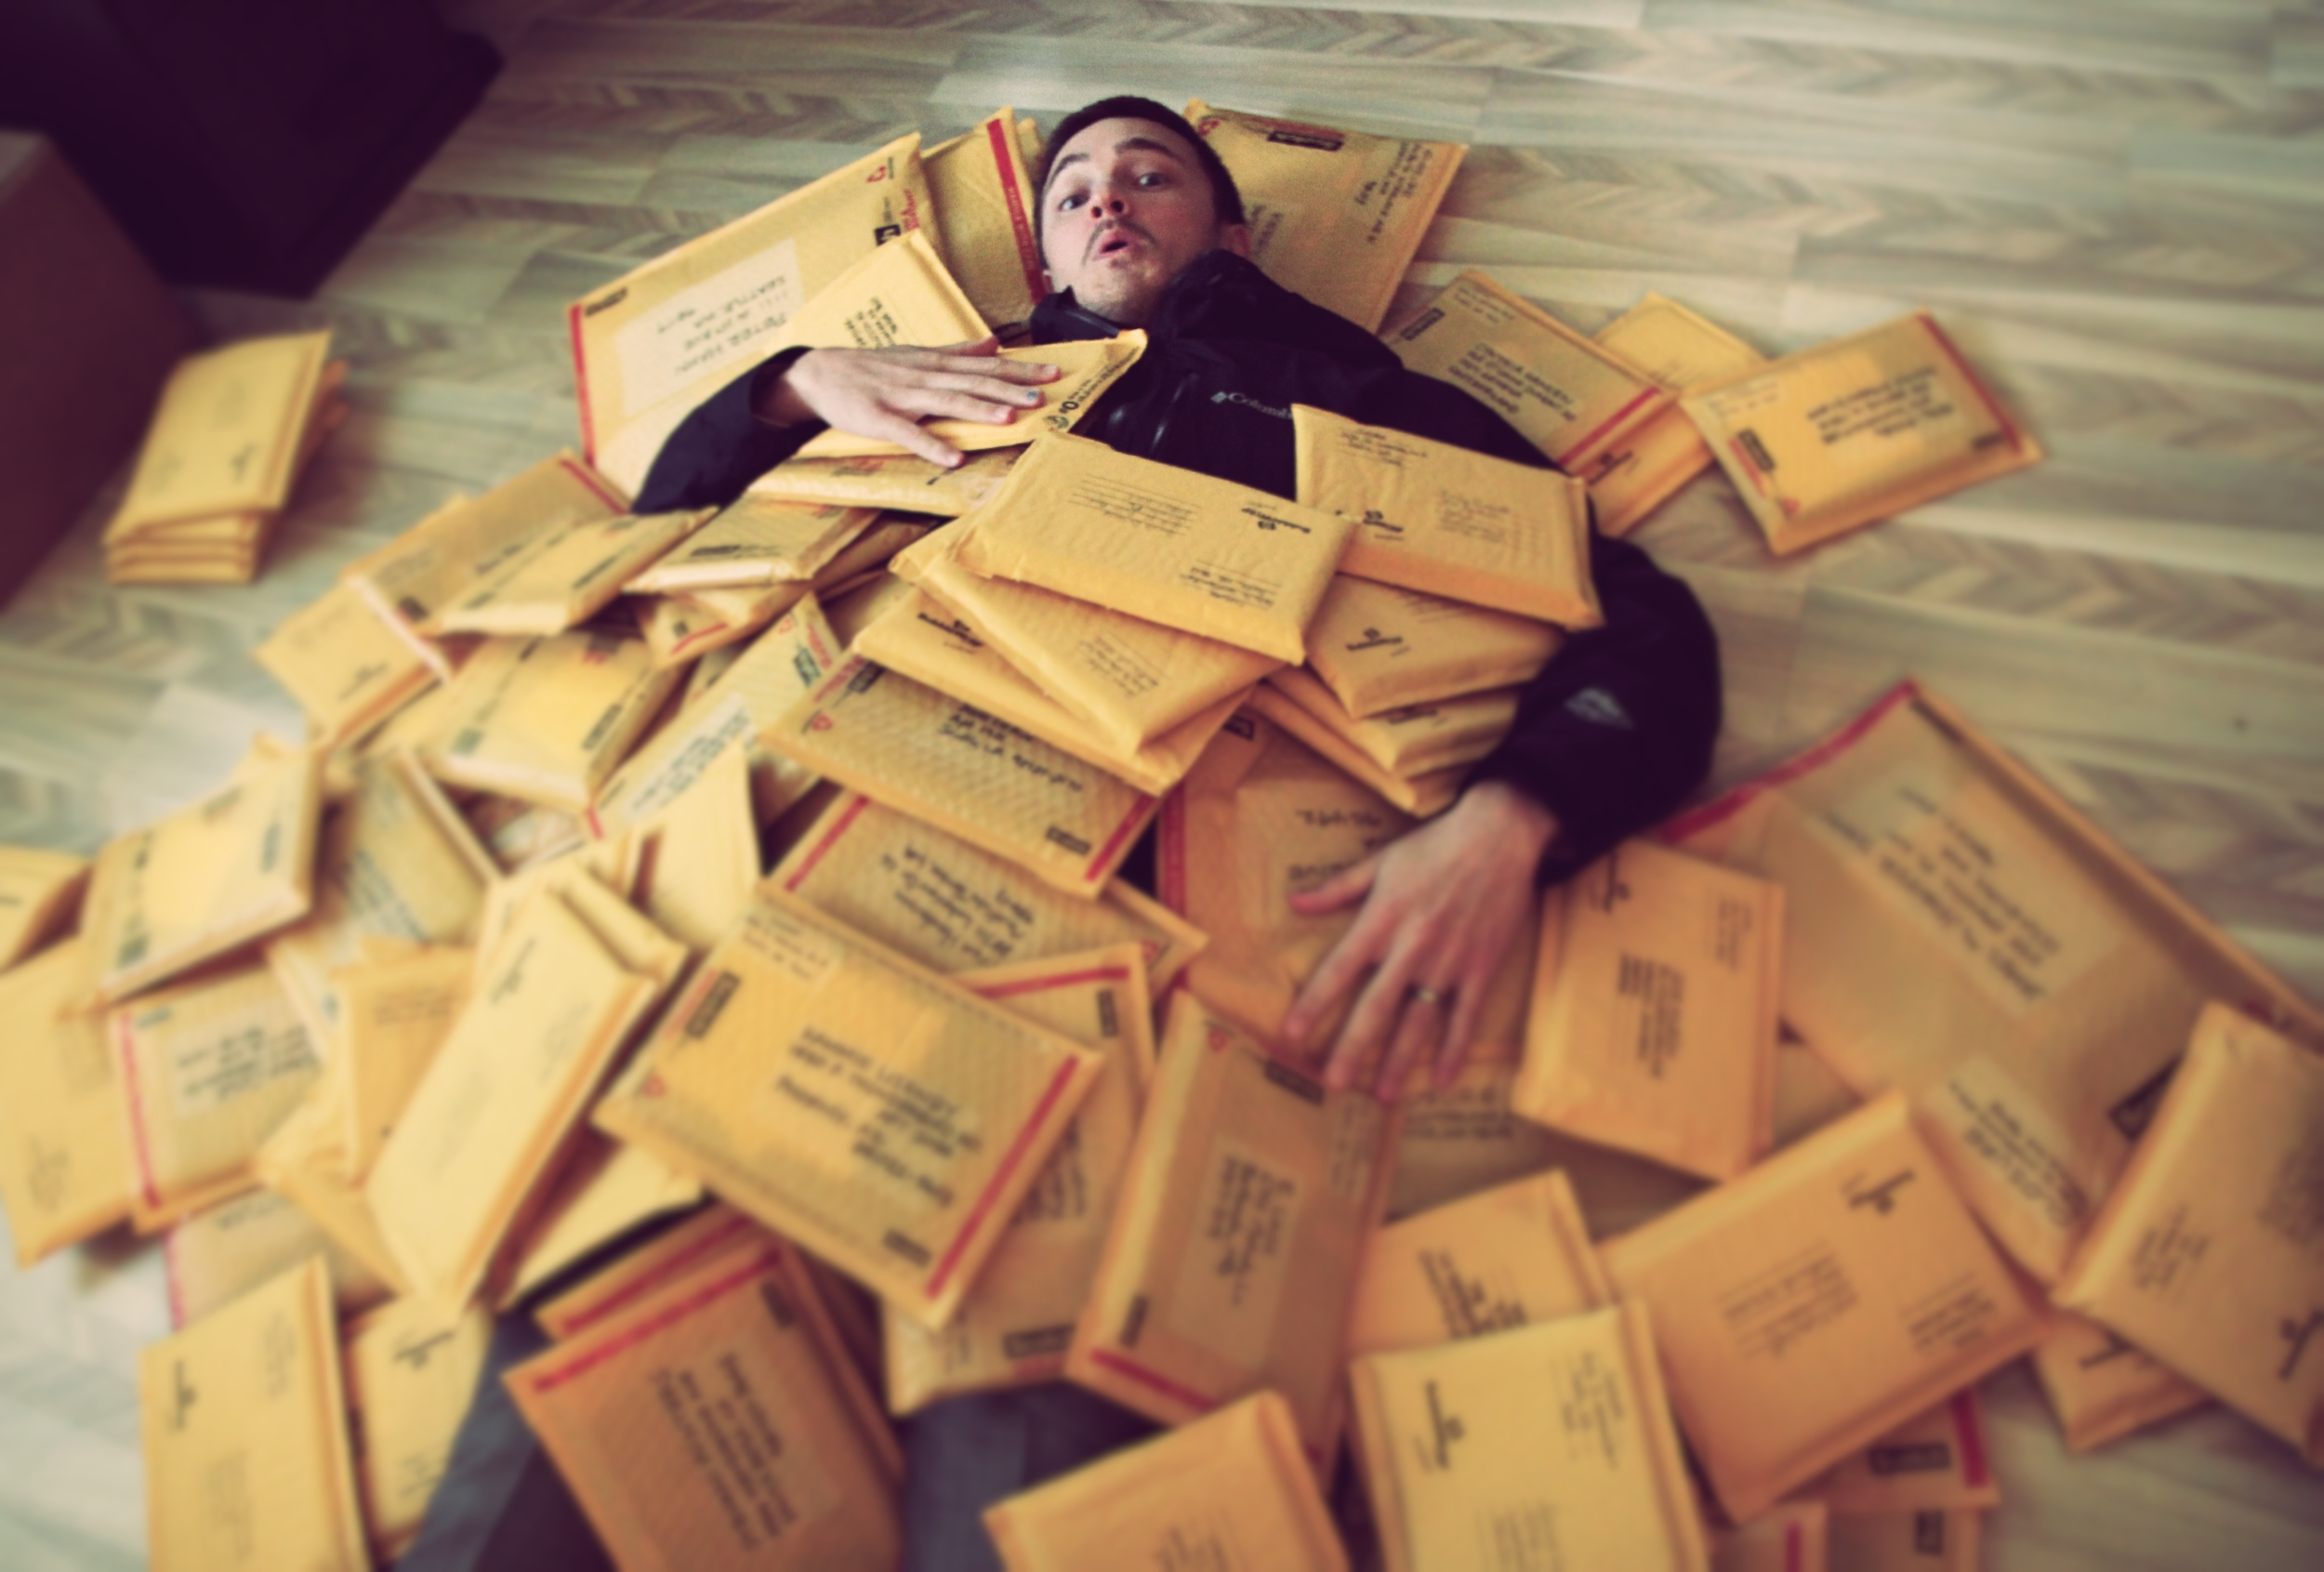 Bryan buried in Kickstarter packages!